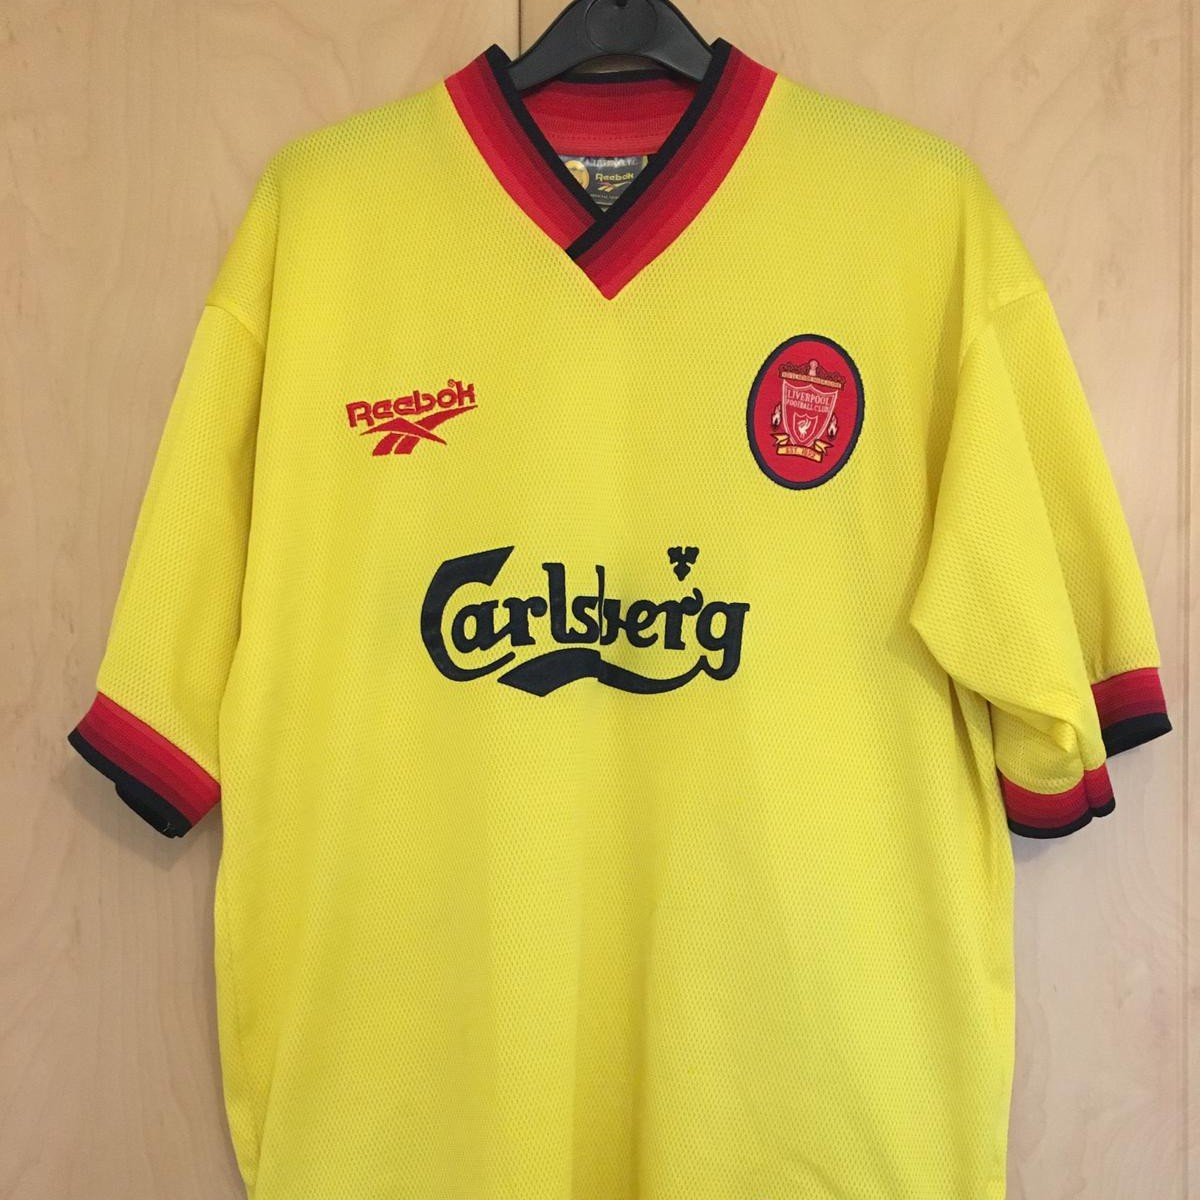 the best attitude 7ceb1 afe6d Liverpool Football Club Away Kit 1997/1998 This... - Depop